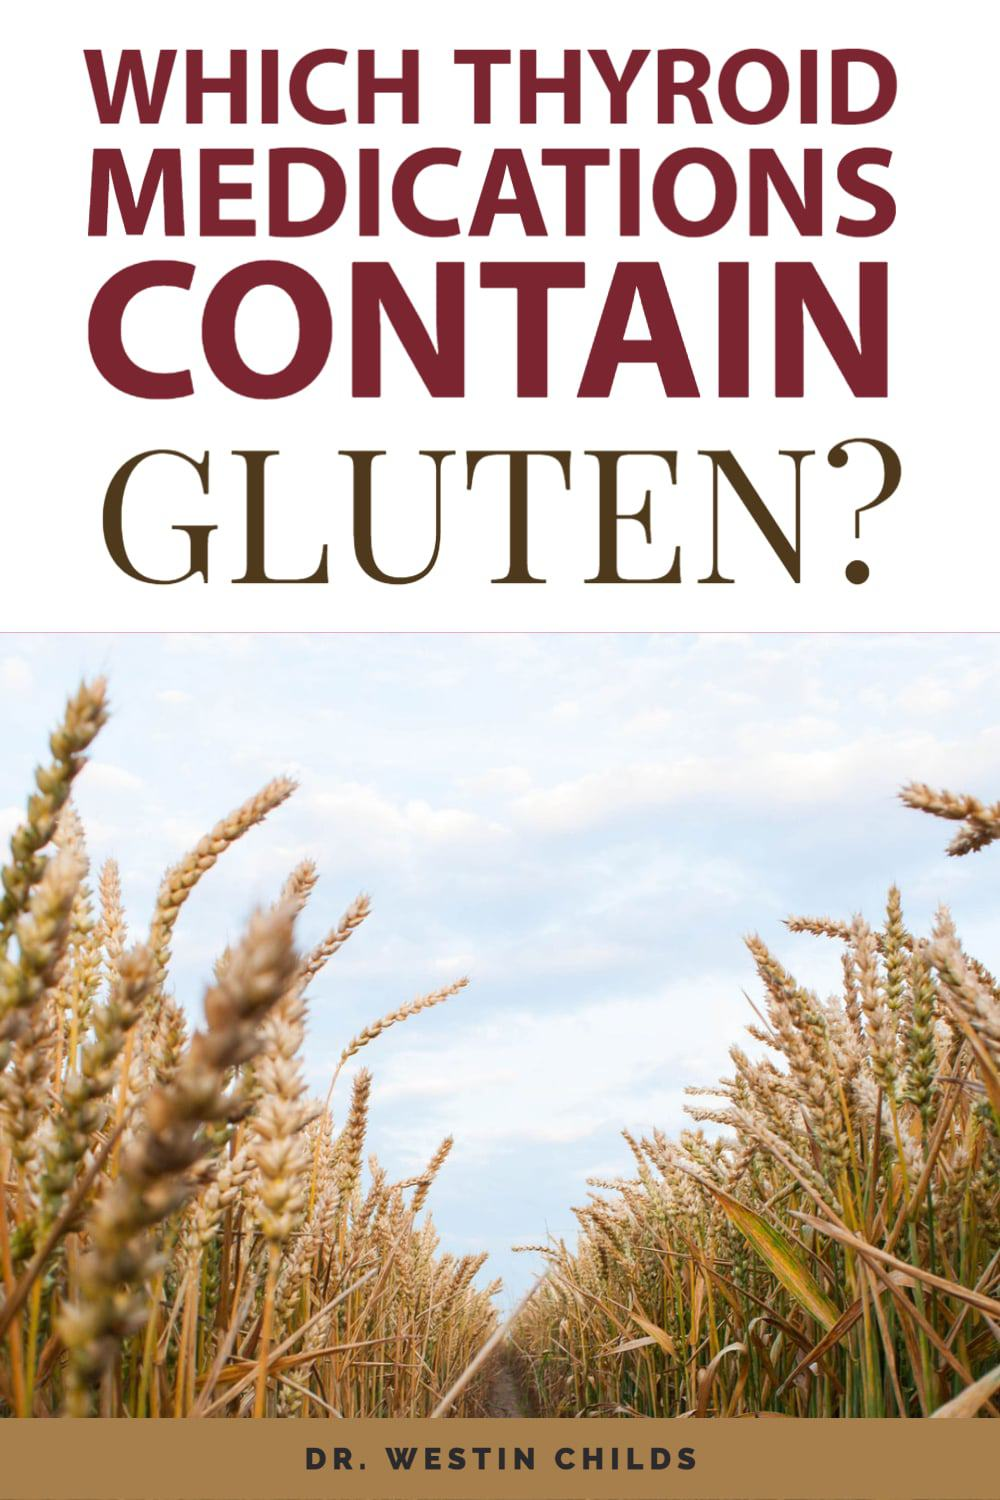 which thyroid medications contain gluten